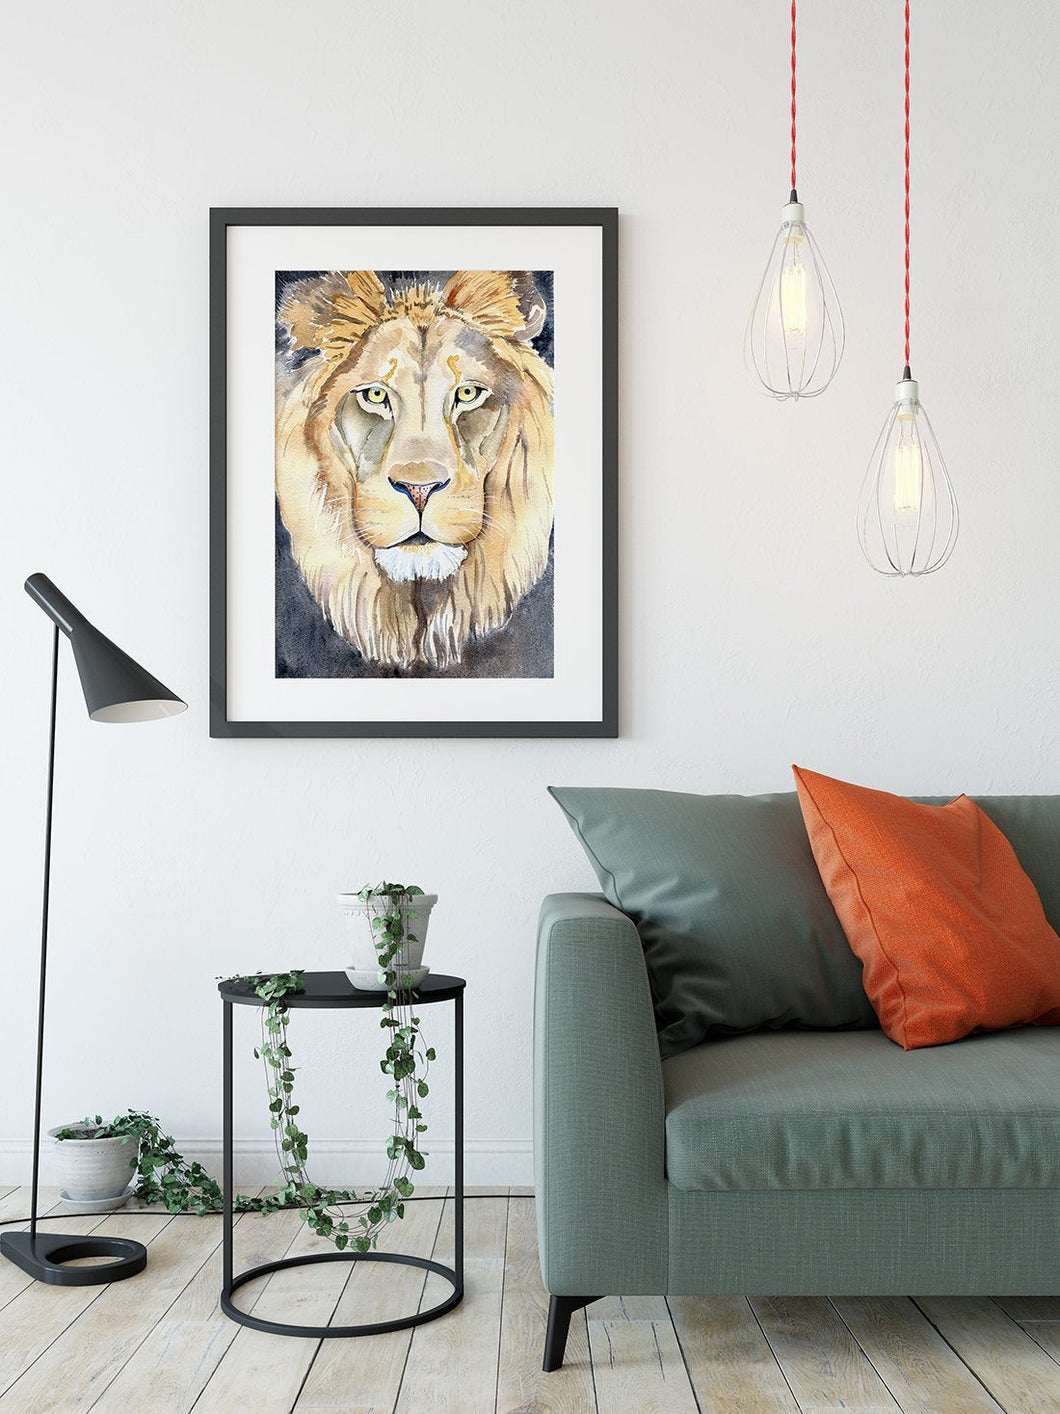 Lion art print, Nursery Safari Decor, king of the jungle, Watercolour Lion, lion painting, Leo Art, Safari Animal Print, kids room lion art